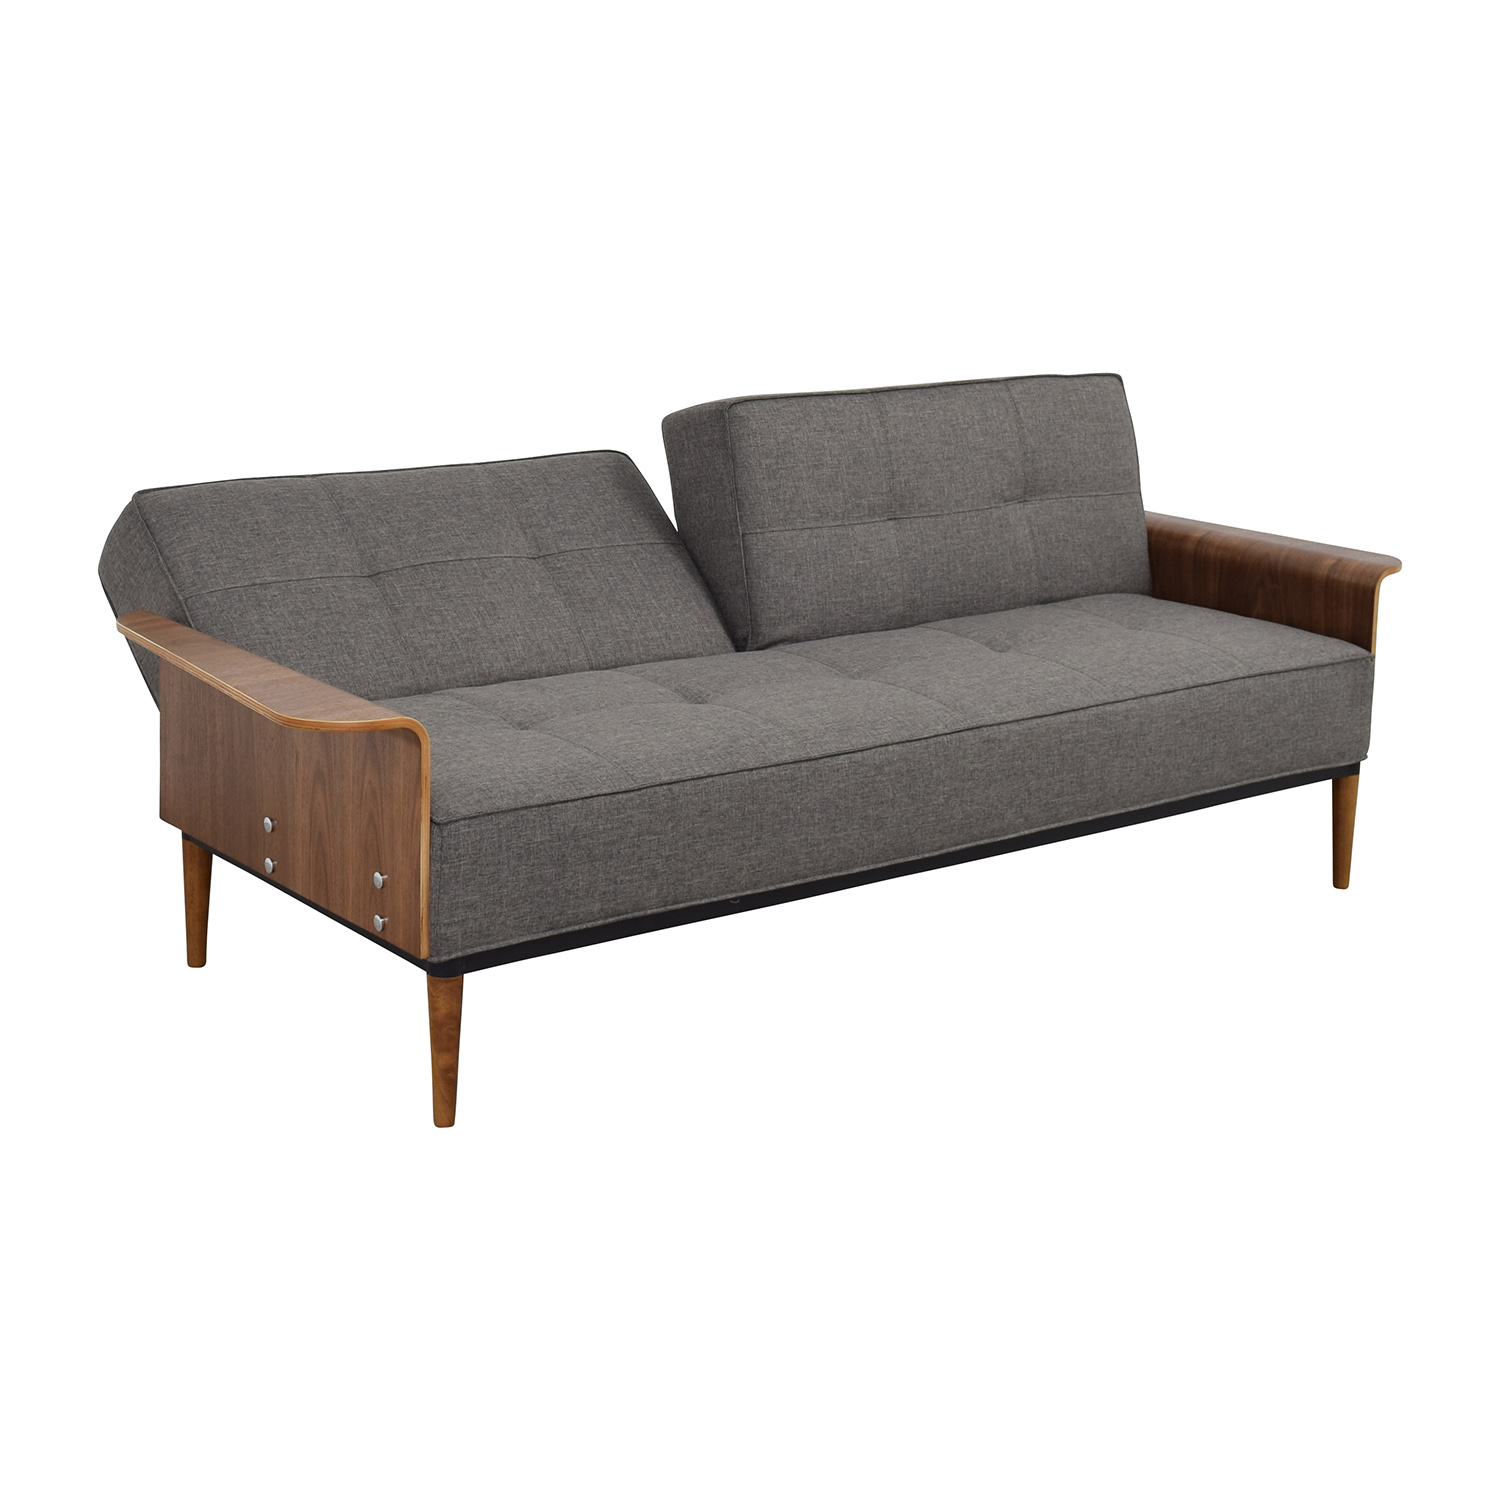 48 off inmod inmod bjorg tufted dark grey sofabed sofas for In mod furniture